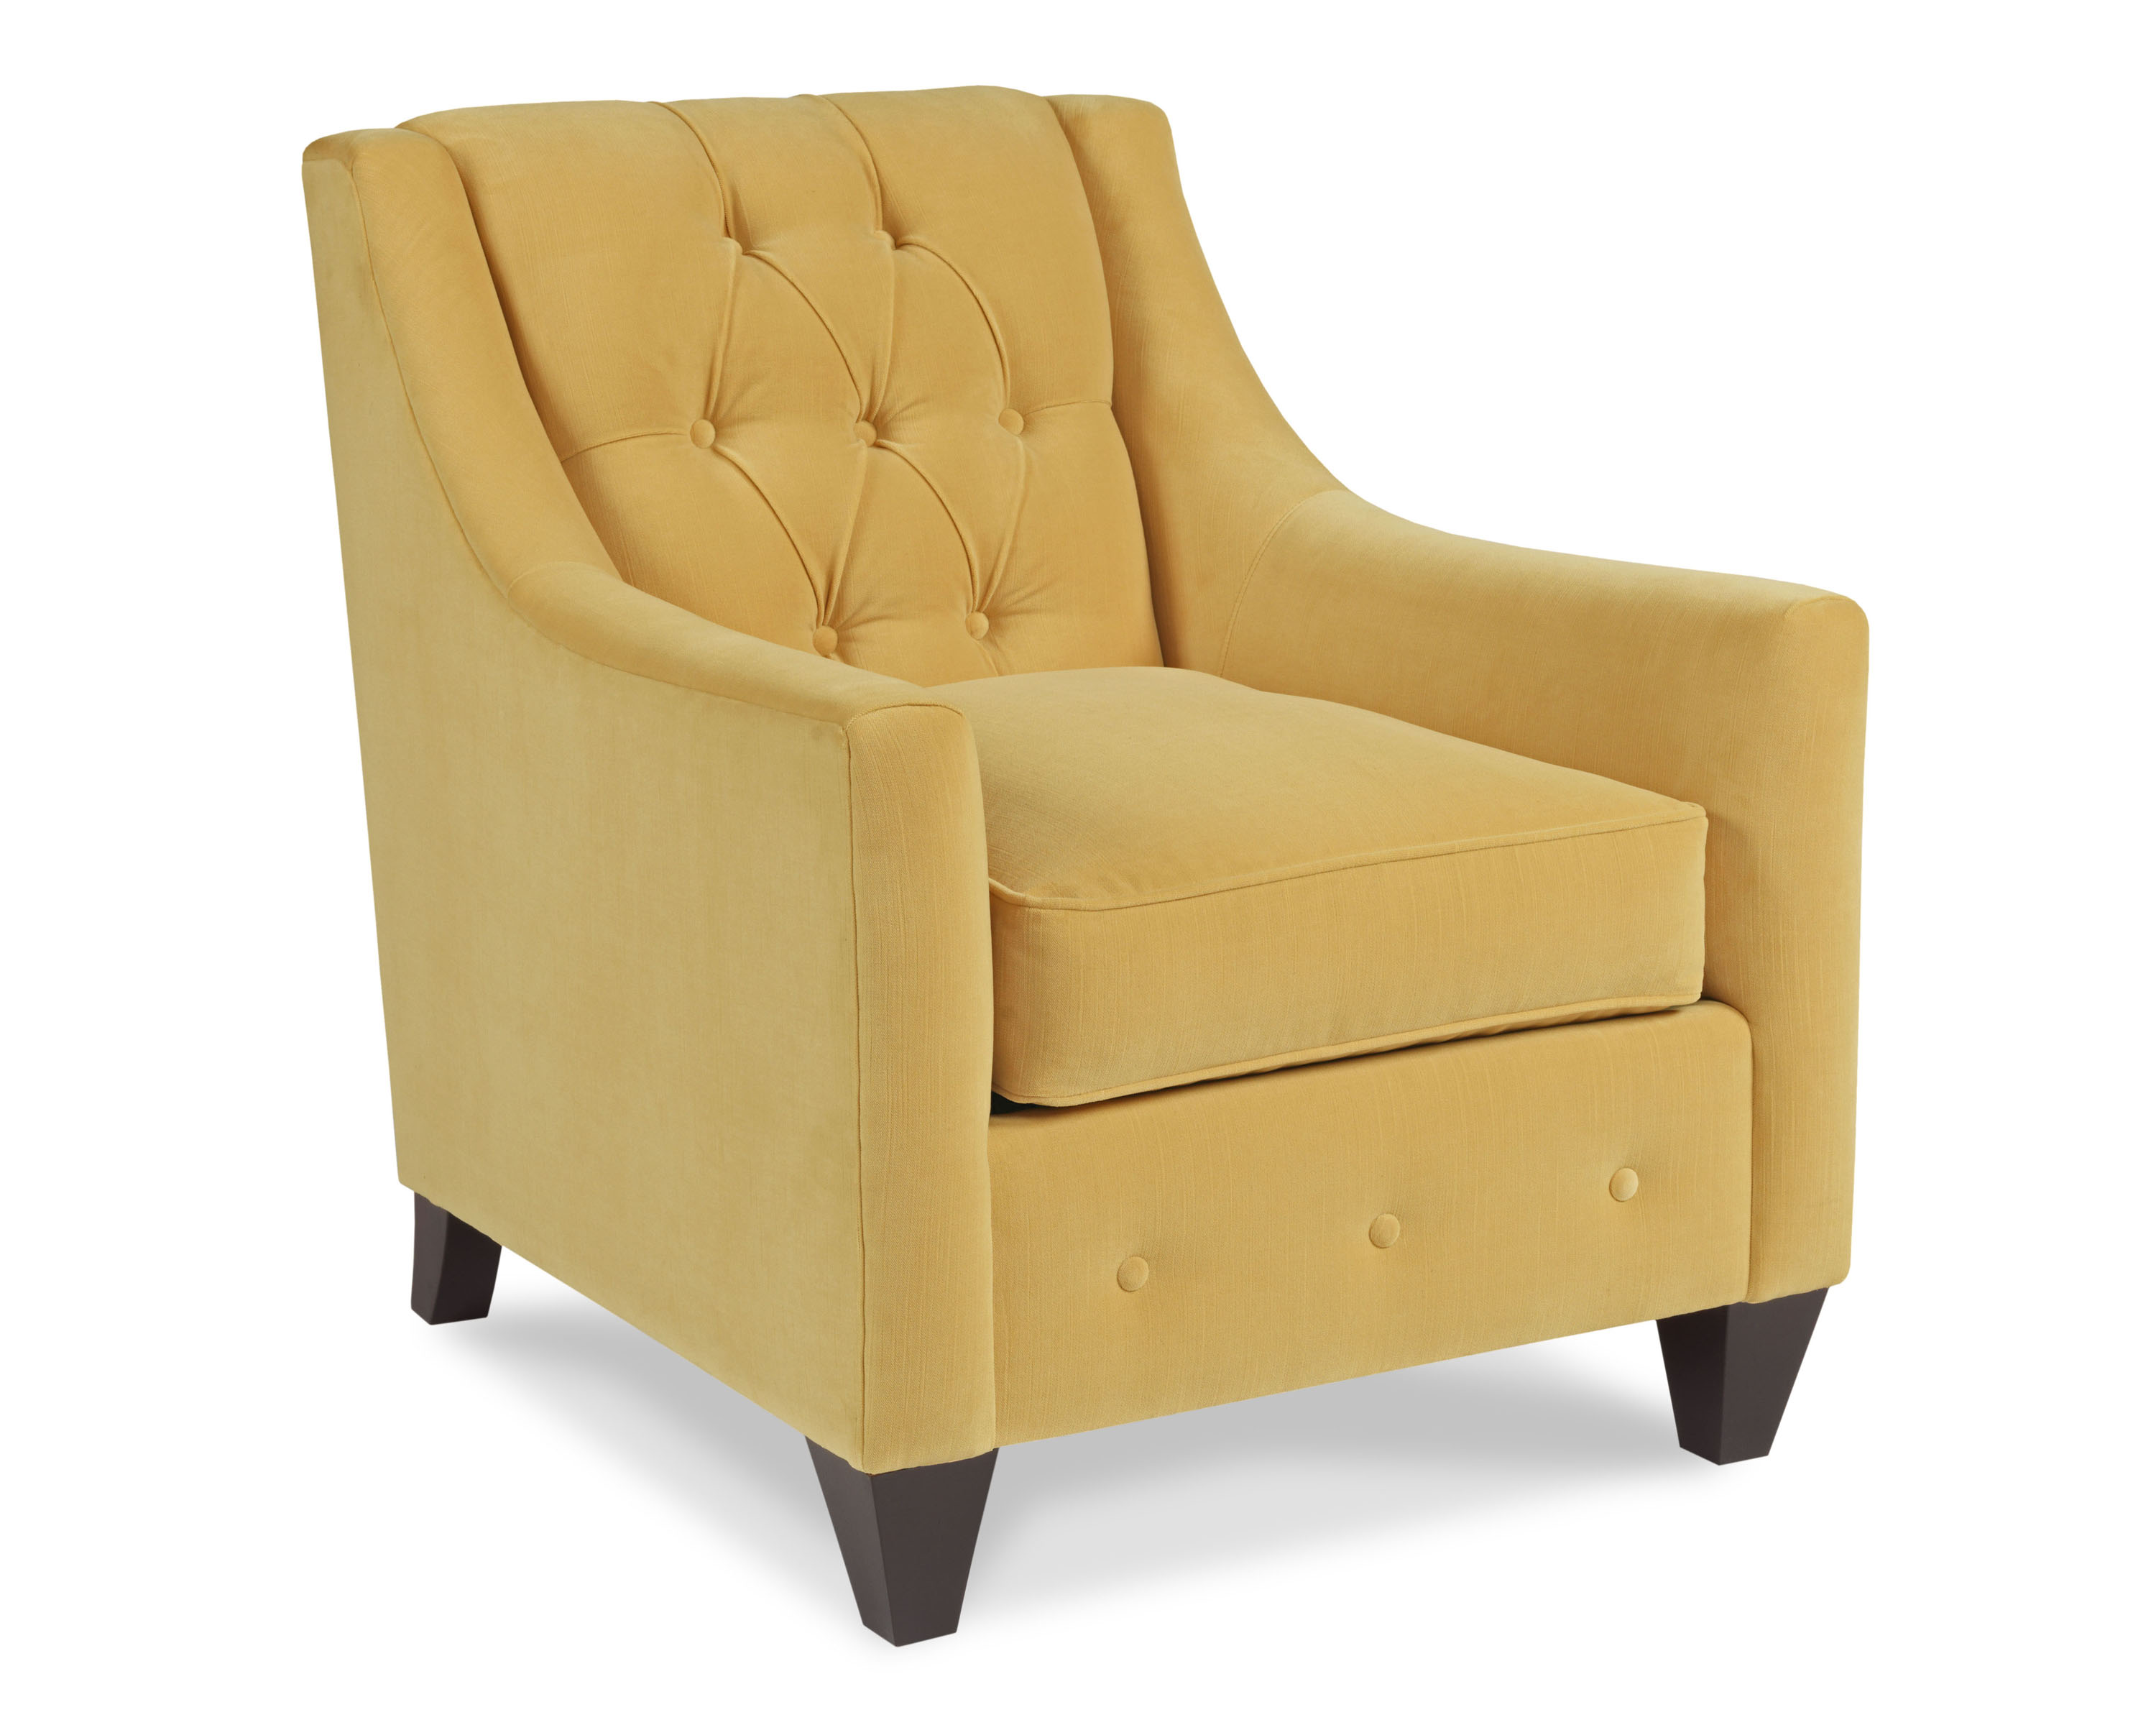 Tufted Low Back Chair